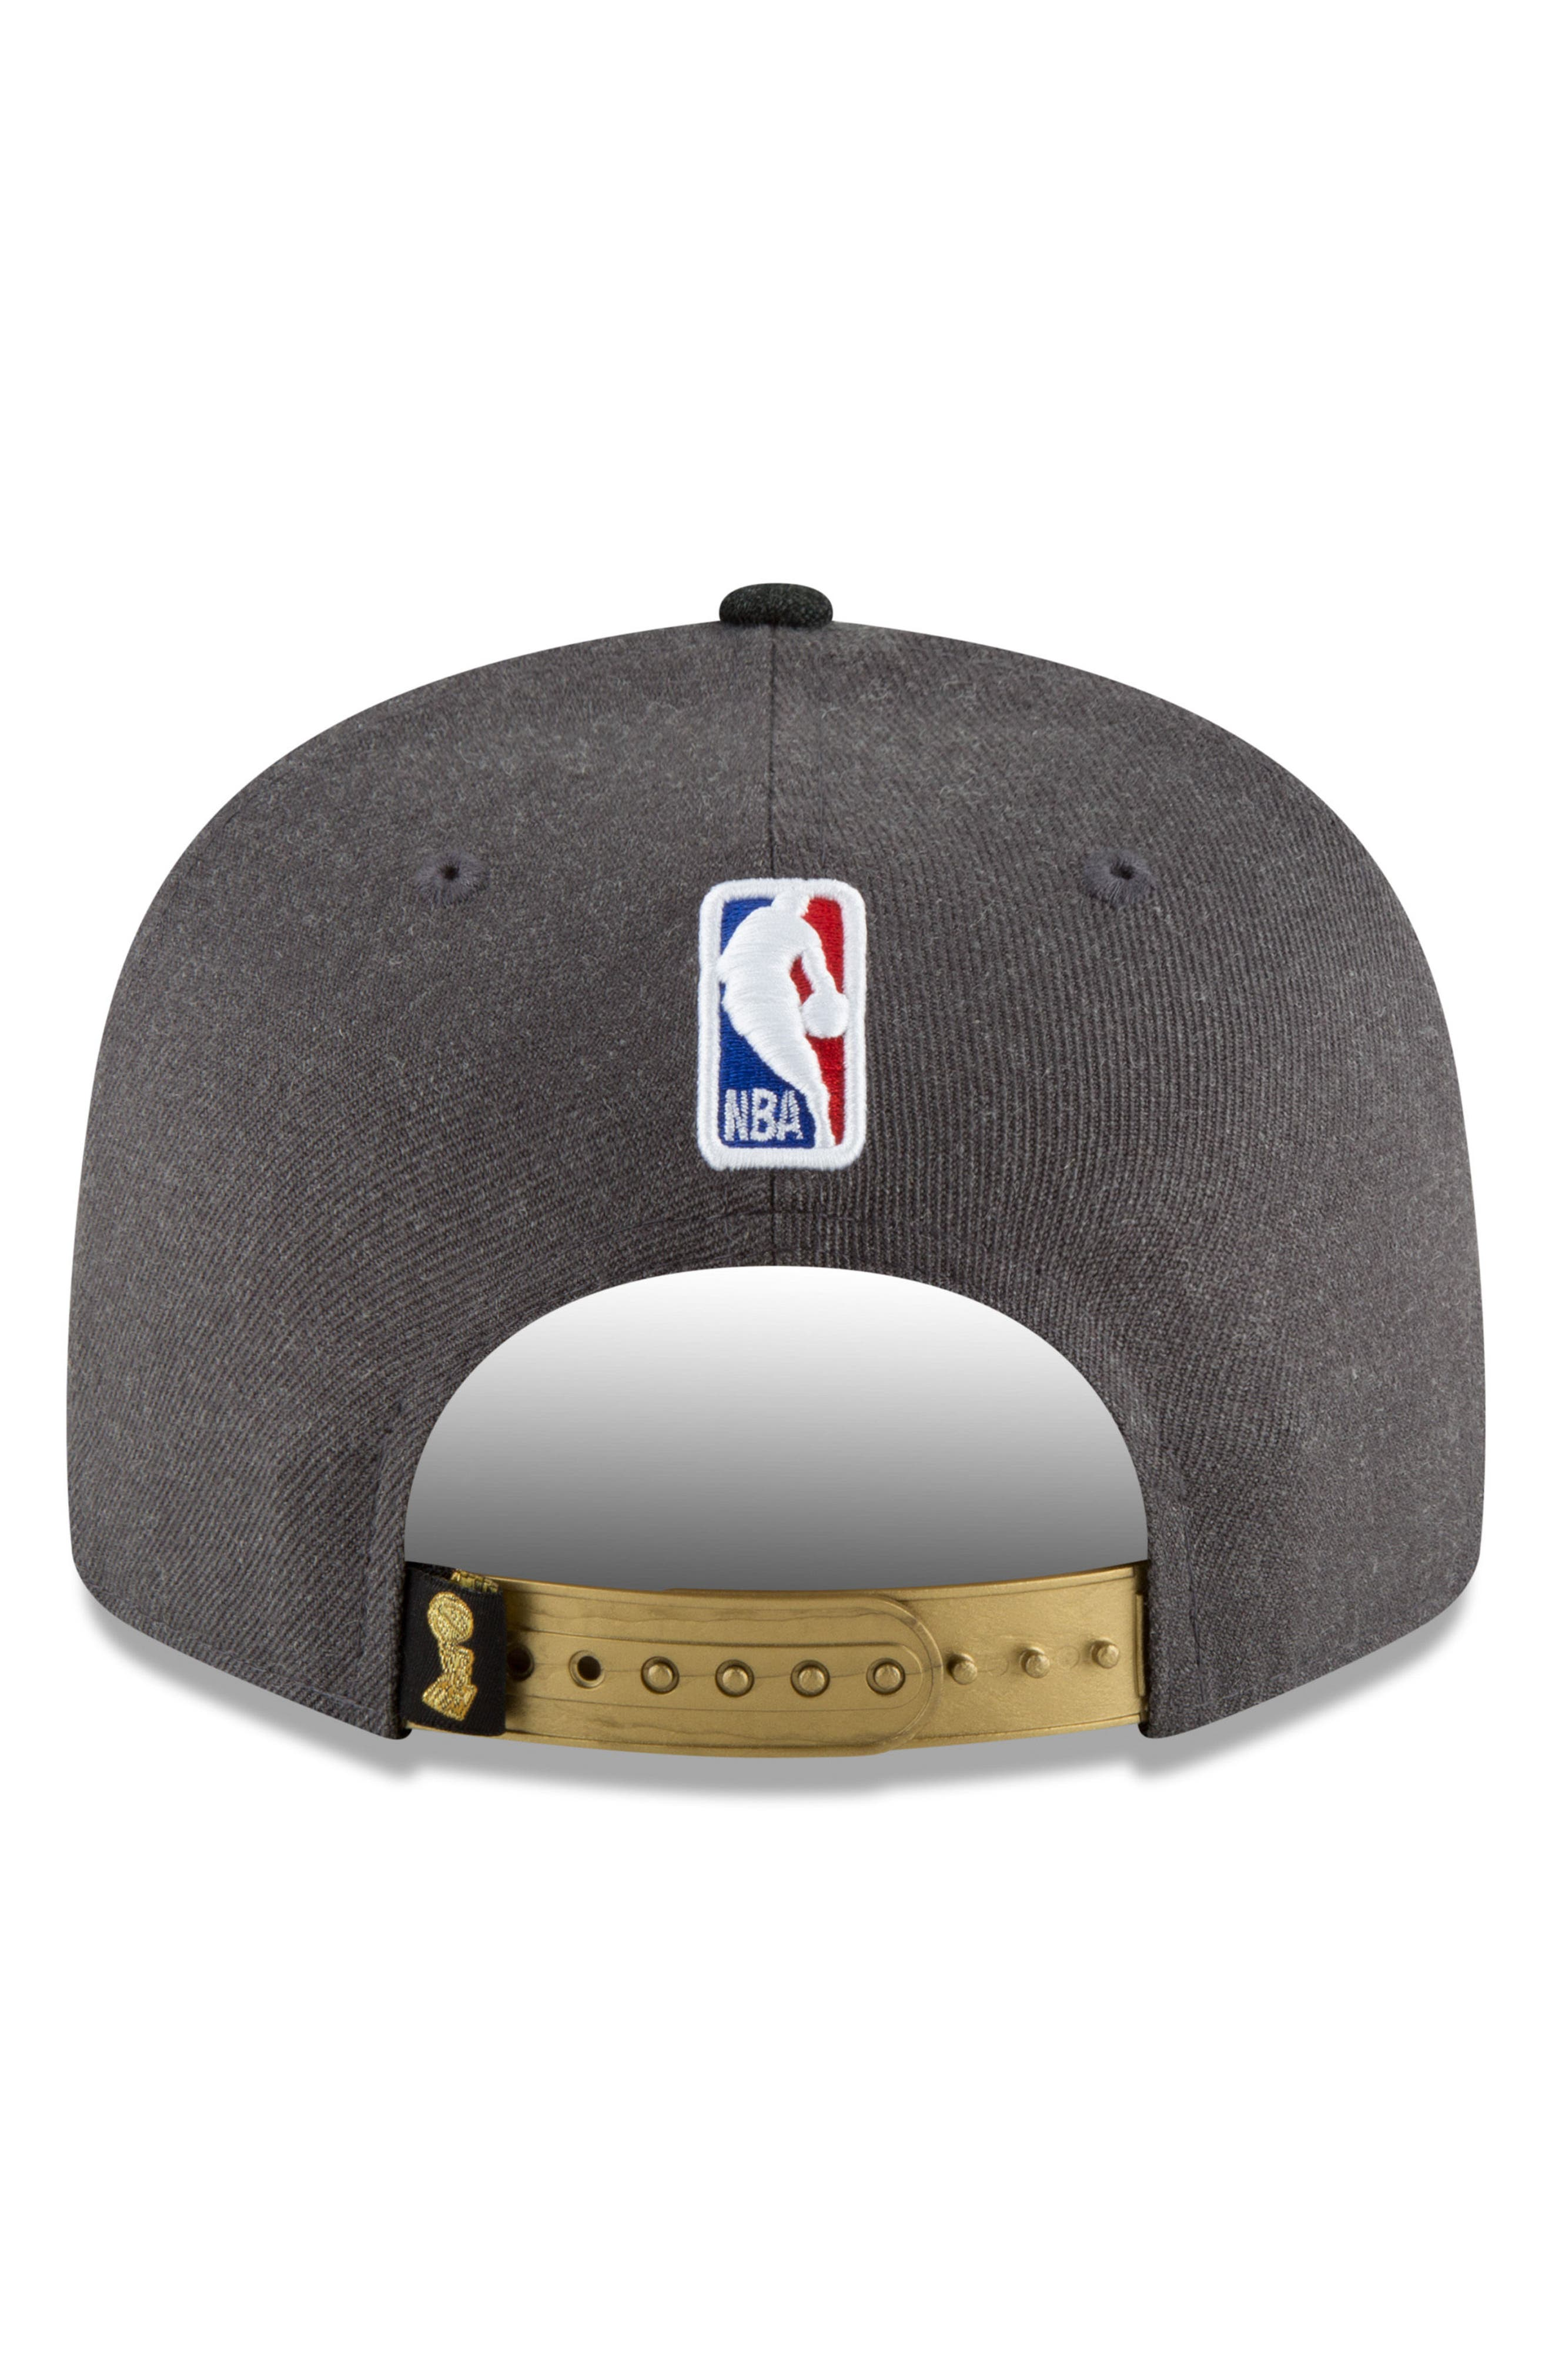 2018 NBA Champions - Golden State Warriors 9Fifty Snapback Cap,                             Alternate thumbnail 3, color,                             030